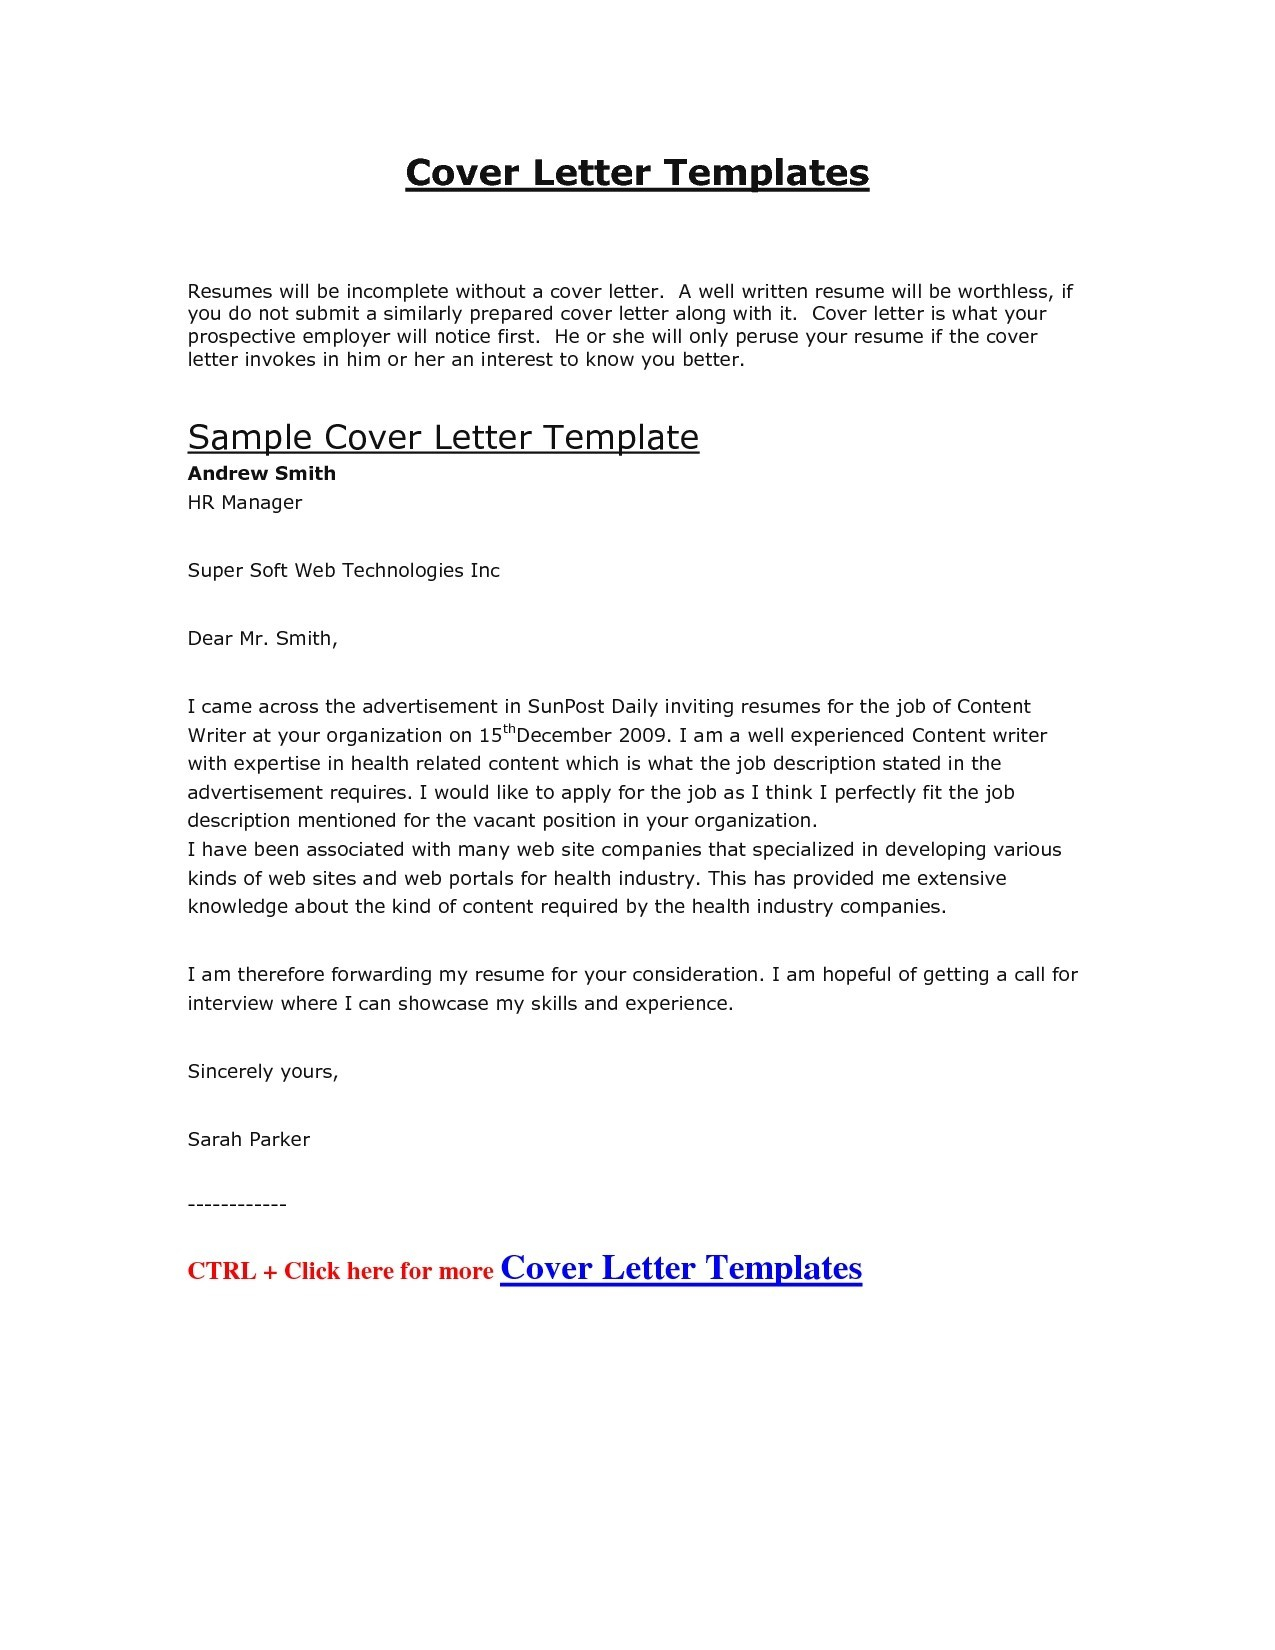 new client welcome letter template job application letter format template copy cover letter template hr